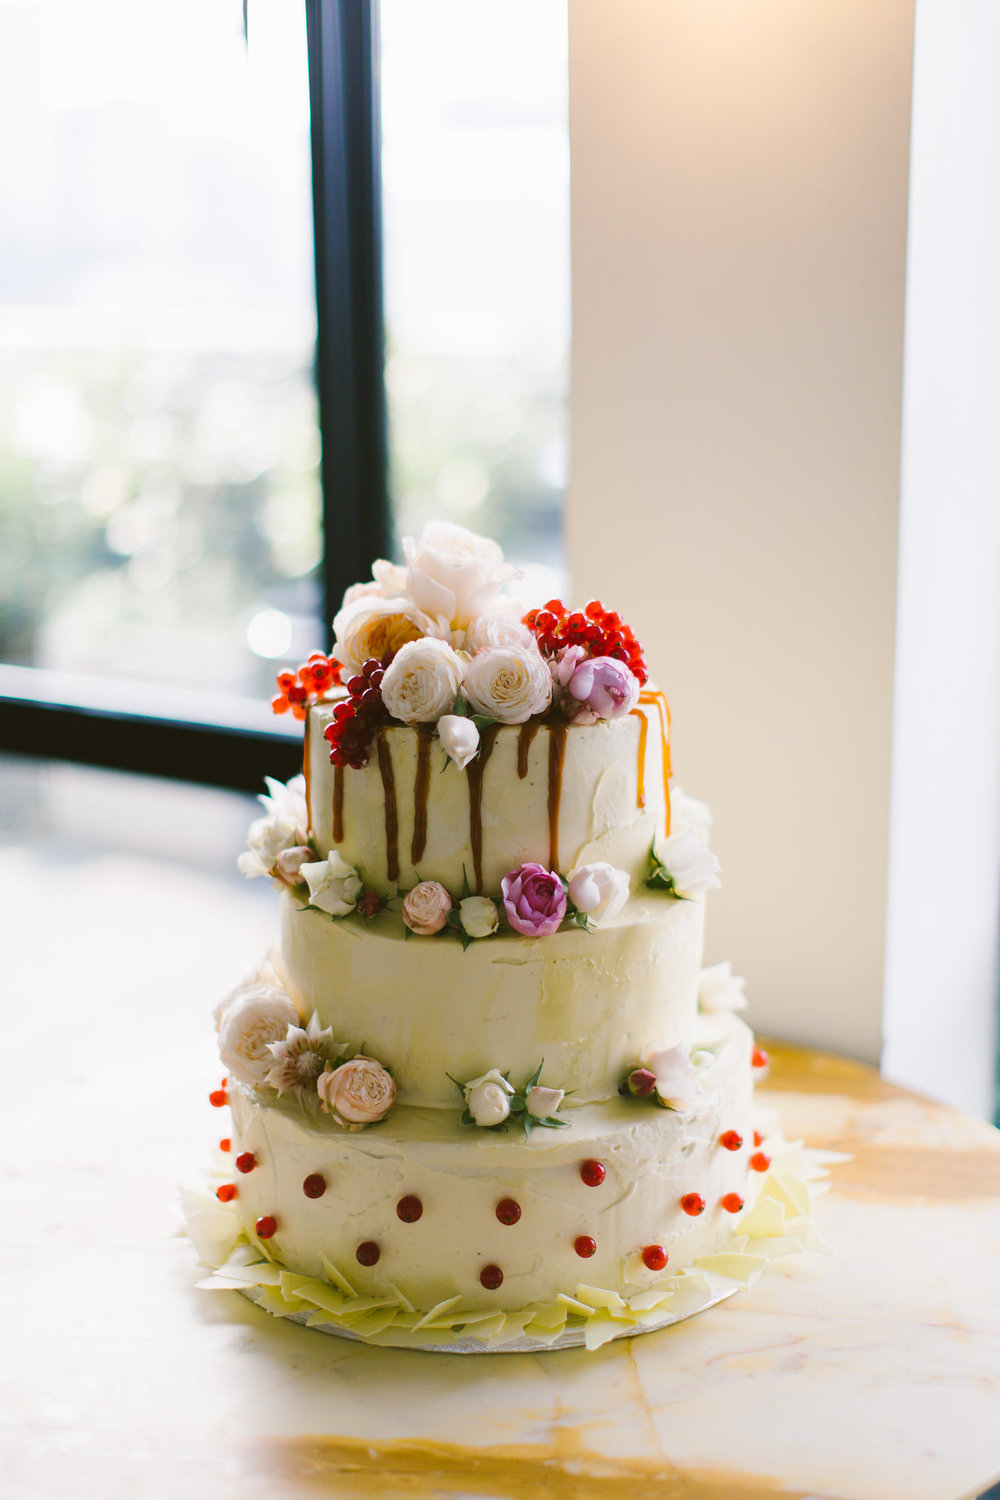 Ace hotel london - wedding cake